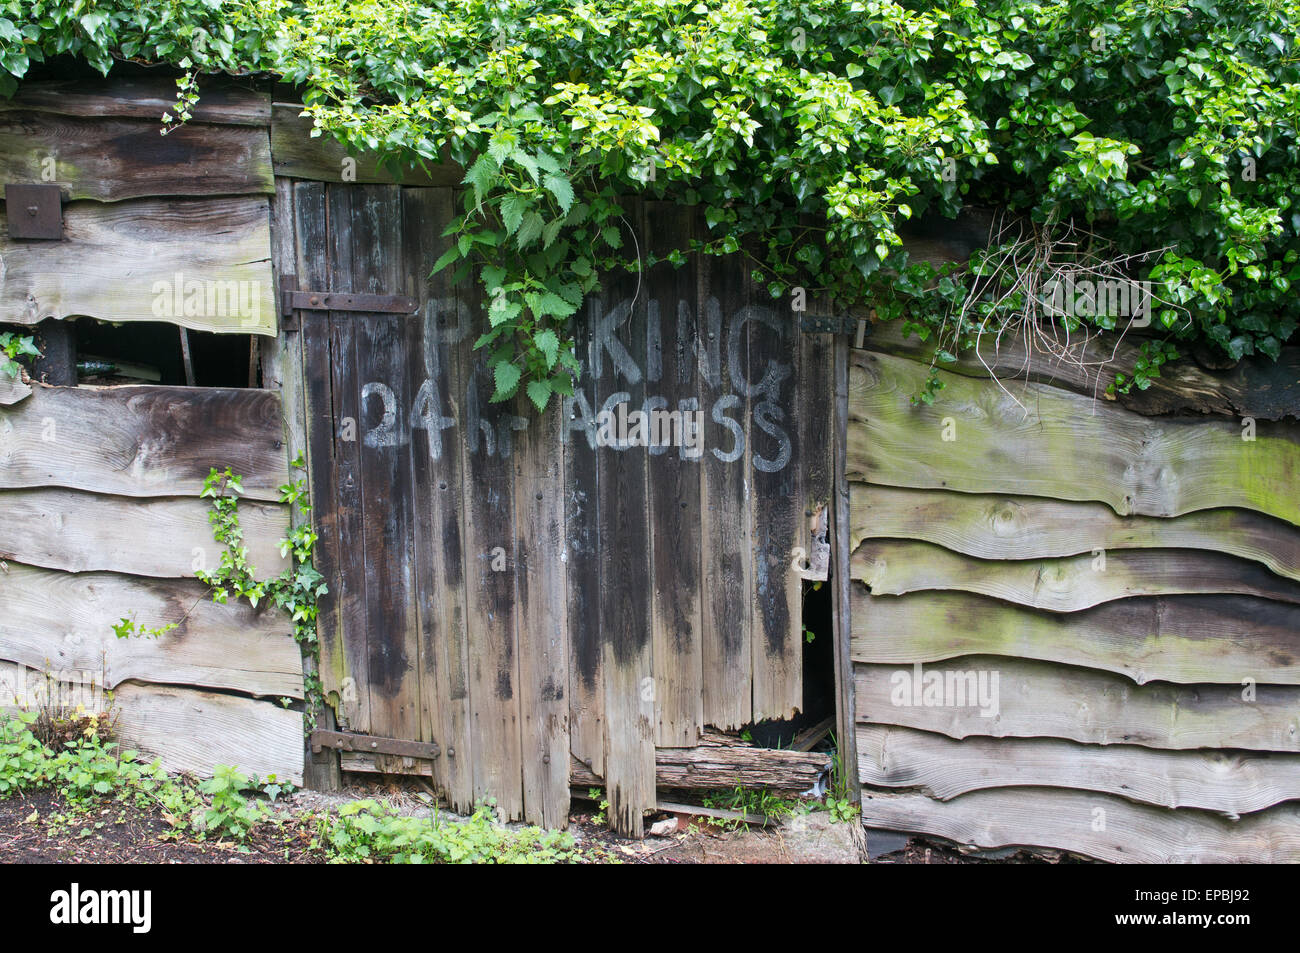 Decrepit shed with no parking sign Malvern, Worcestershire, England, UK - Stock Image